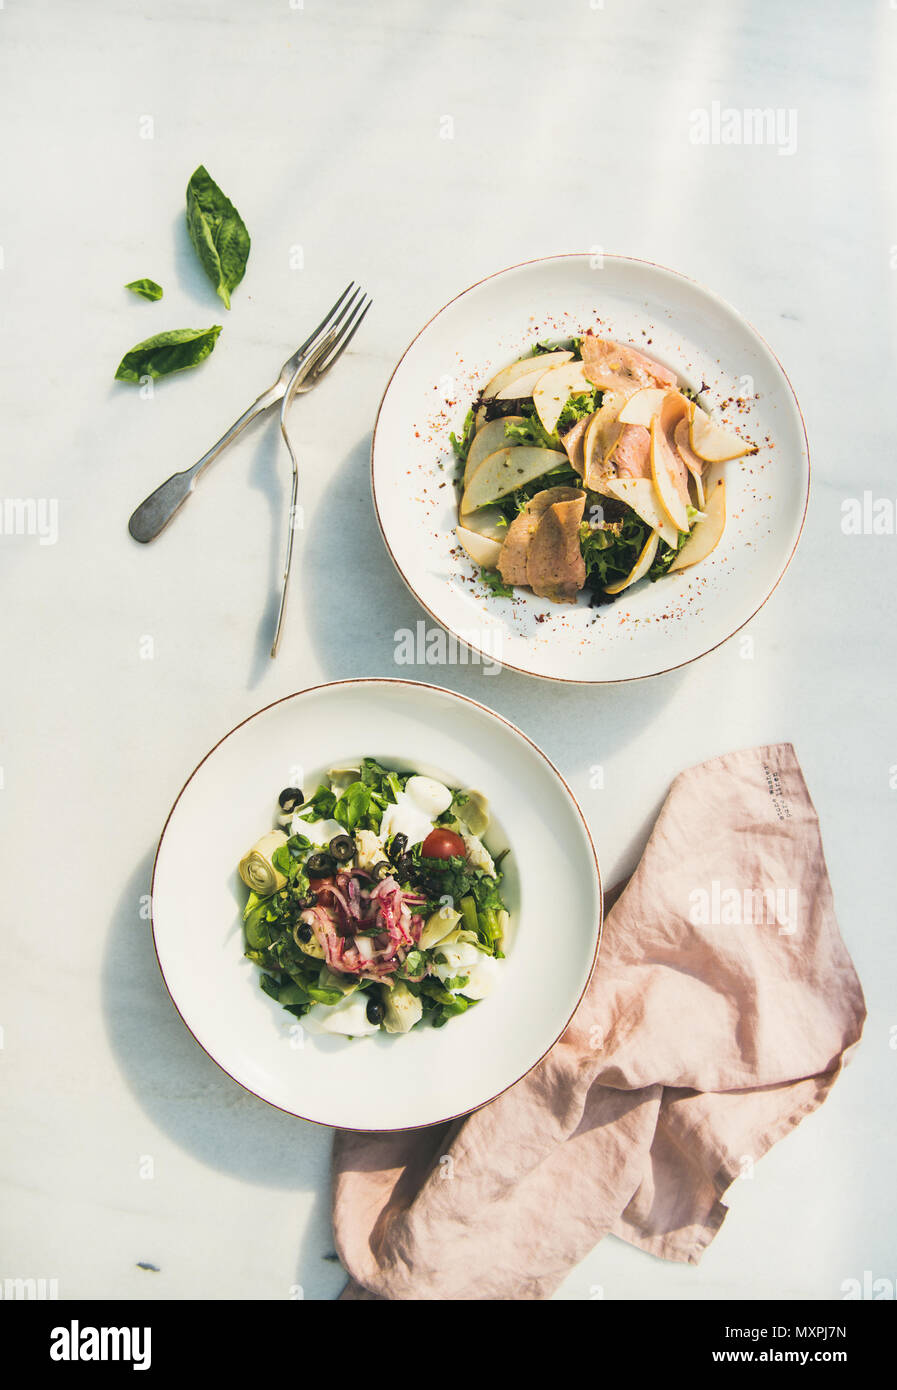 Fresh green summer salads in white plates, top view - Stock Image